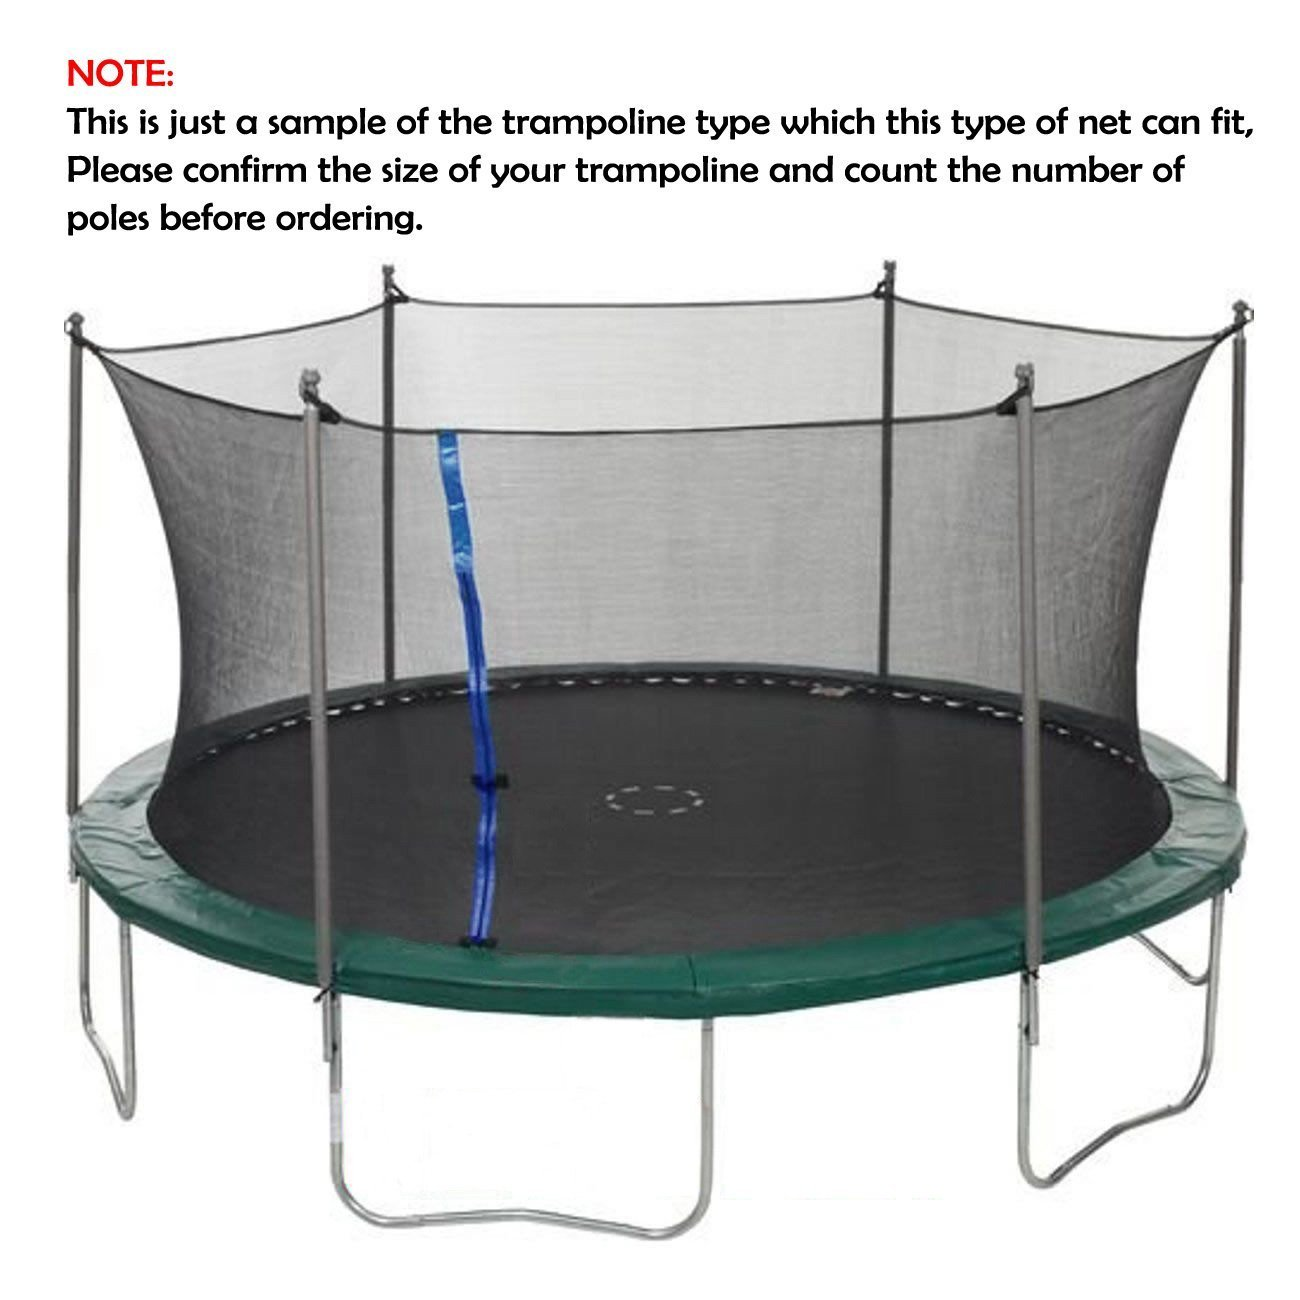 ULTRAPOWER SPORTS Trampoline 13Ft Replacement Safety Enclousure Net for 4 Arched Supports or 8 Straight Poles Round Frame Trampolines (Net Only) … by ULTRAPOWER SPORTS (Image #5)